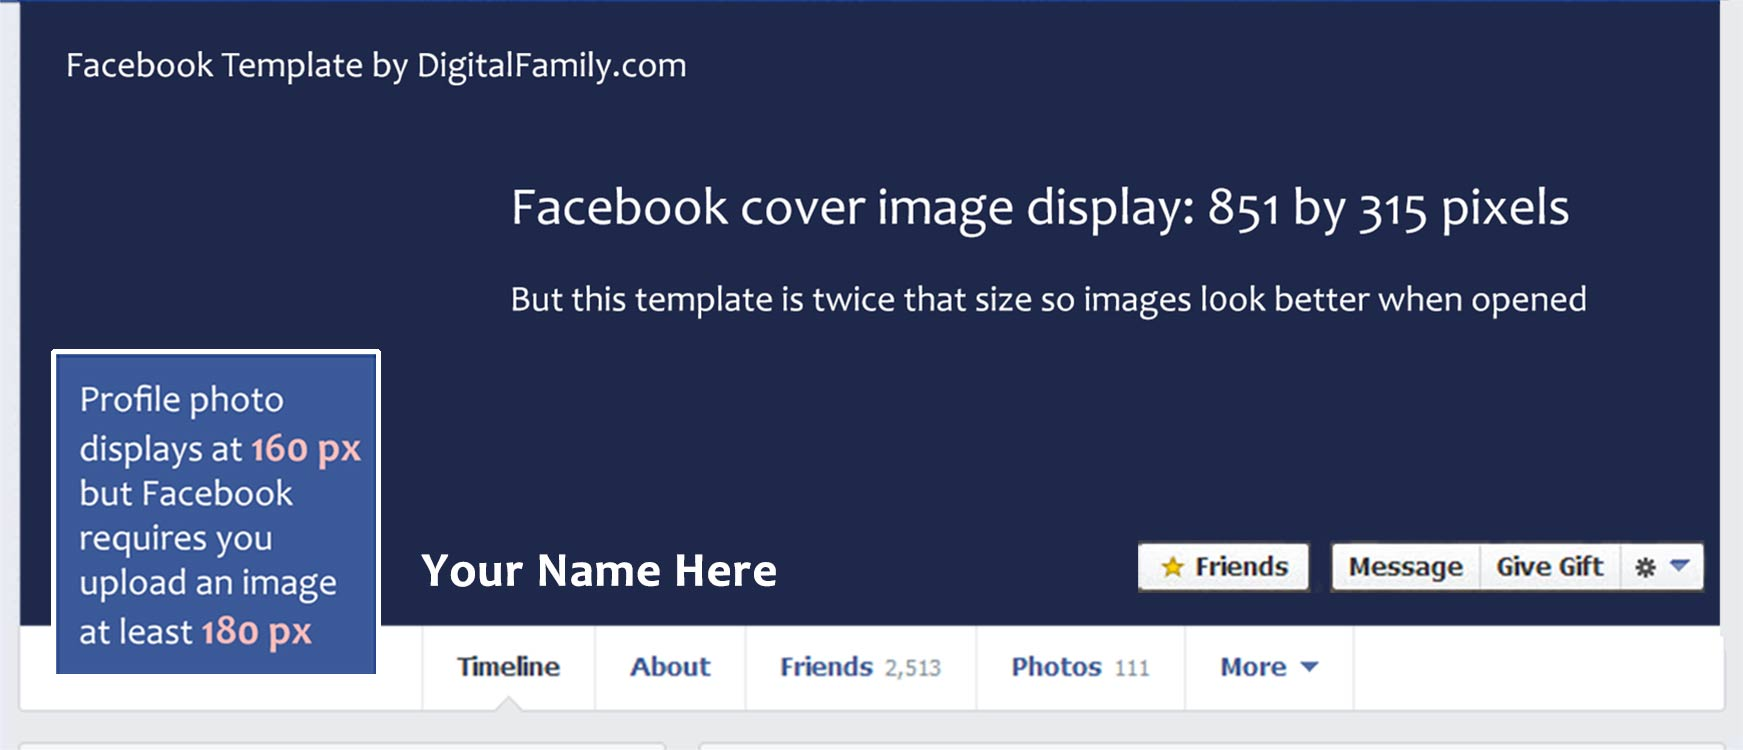 my template is twice the size facebook recommends facebook template 3 2014